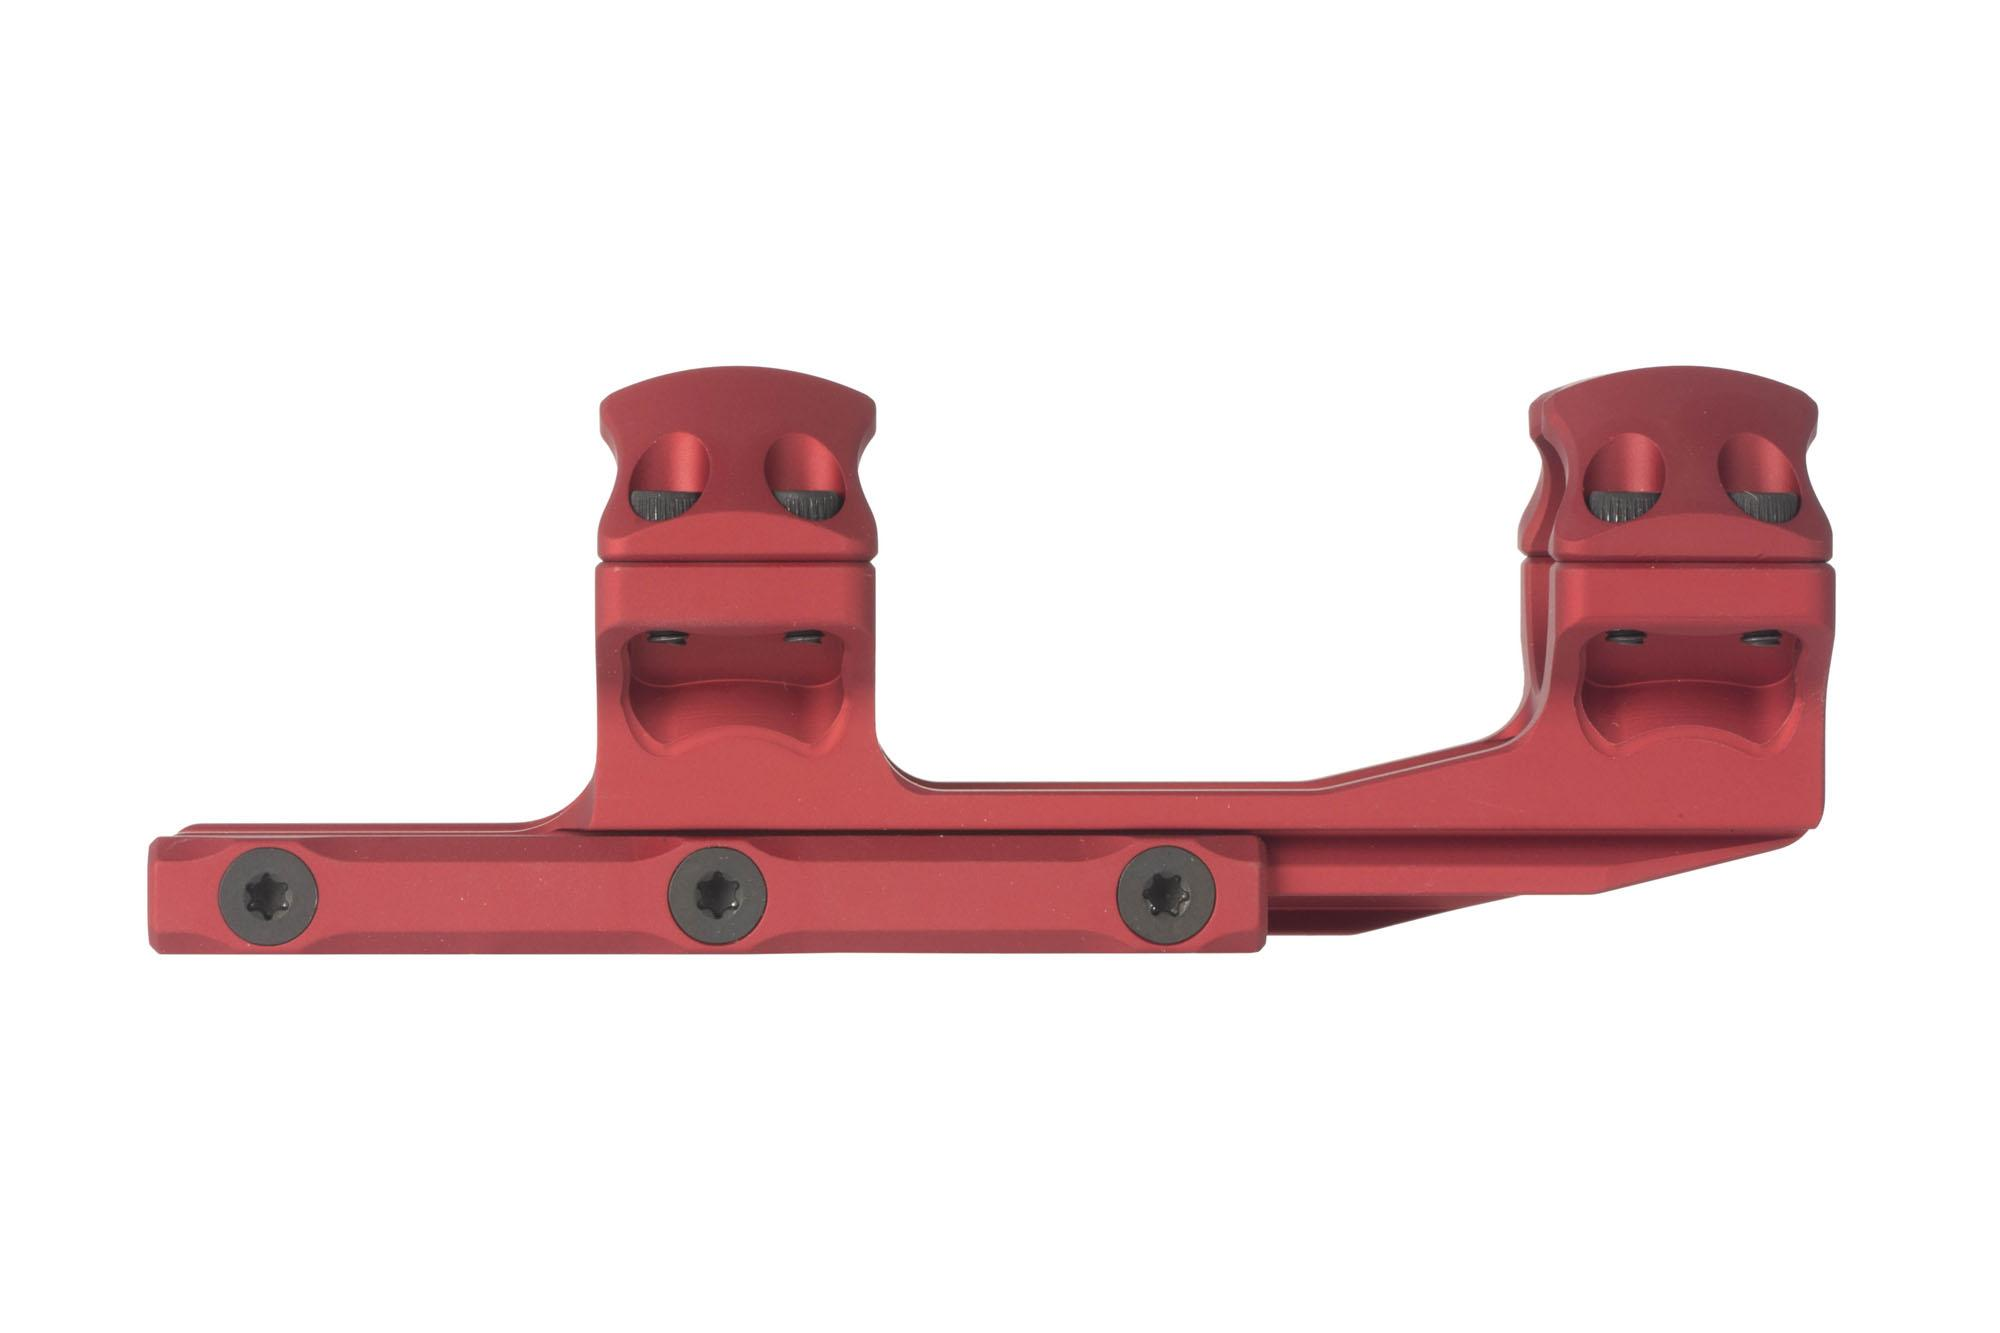 Leapers UTG ACCU-SYNC 1in medium height extended scope mount is machined from 6061-T6 aluminum with red anodized finish